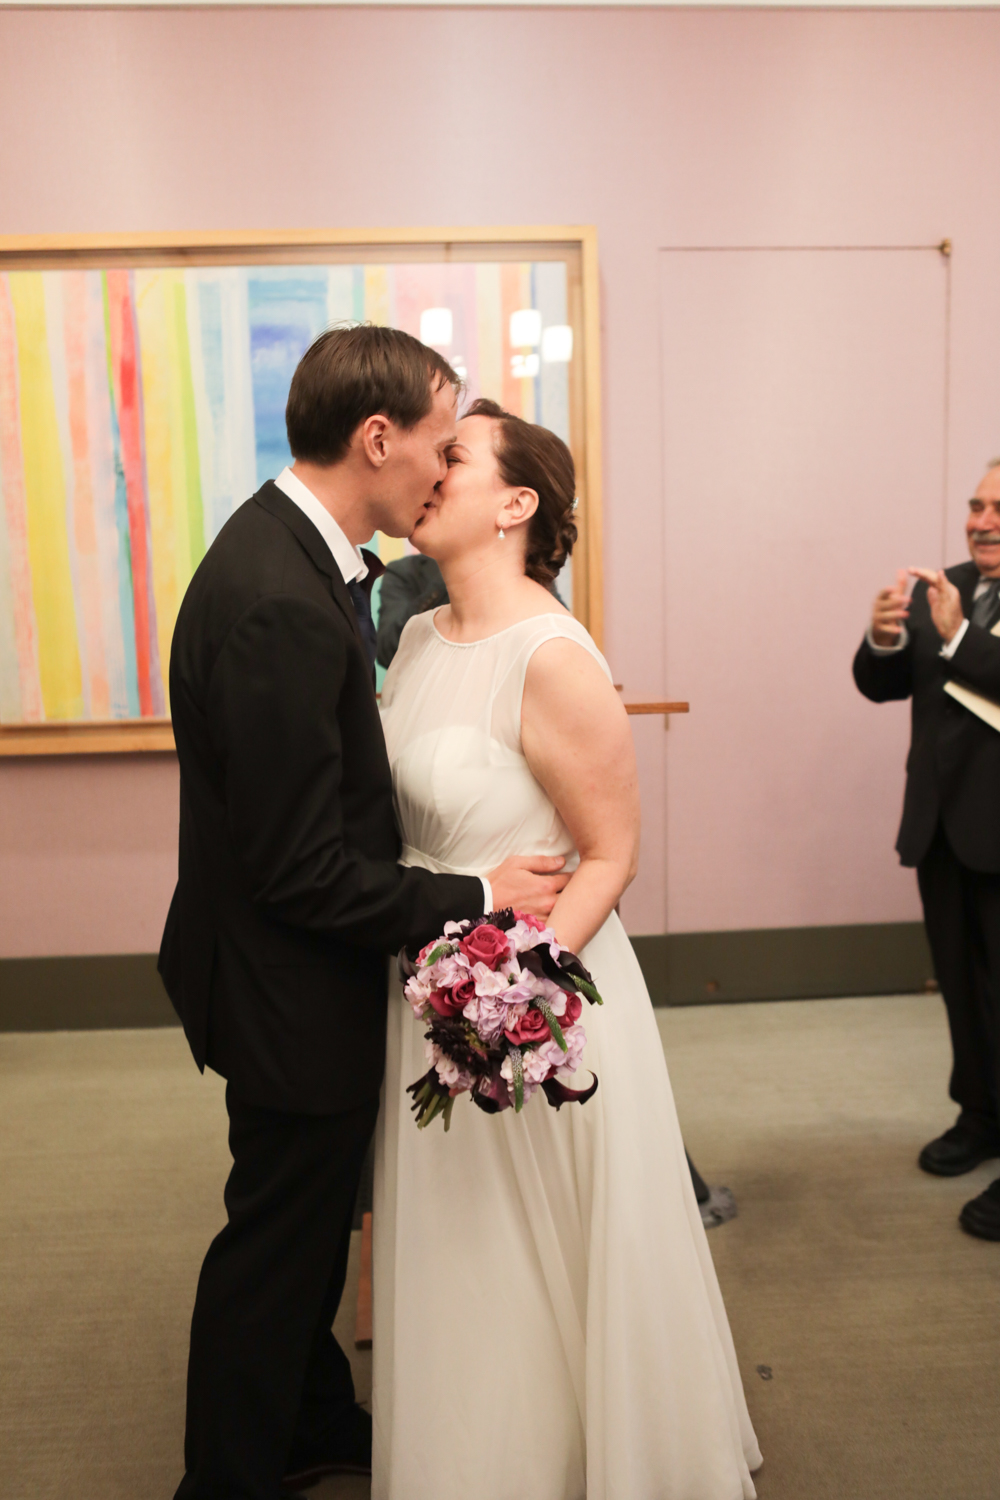 Portrait of a bride and groom's first kiss at their City Hall wedding ceremony in New York City.